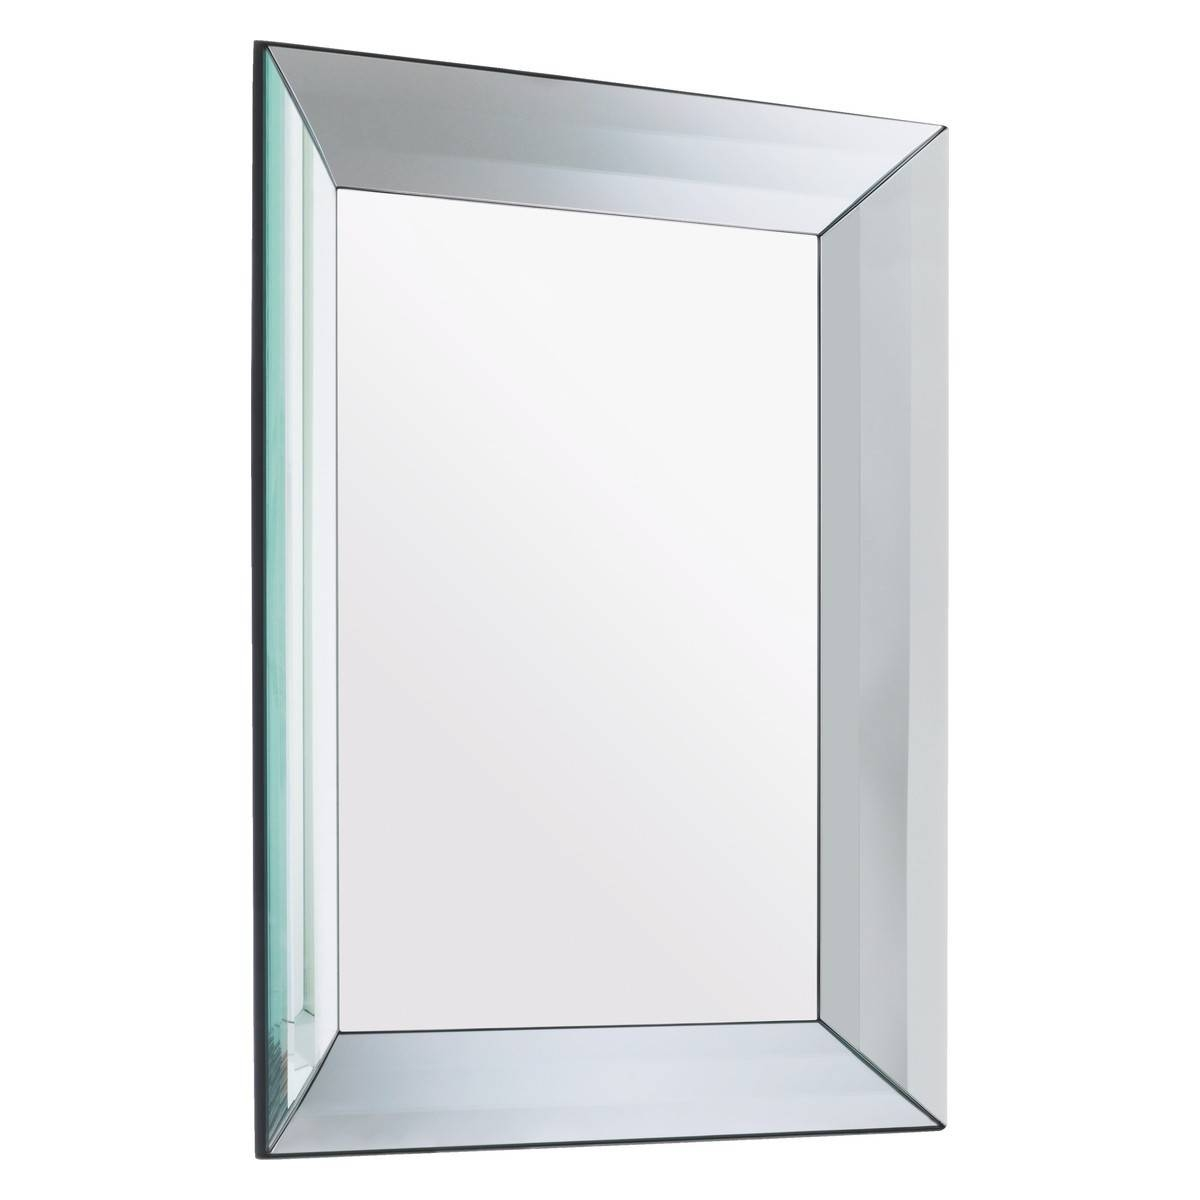 Luella 60 X 80Cm Rectangular Bevelled Wall Mirror | Buy Now At intended for Bevelled Mirrors (Image 21 of 25)